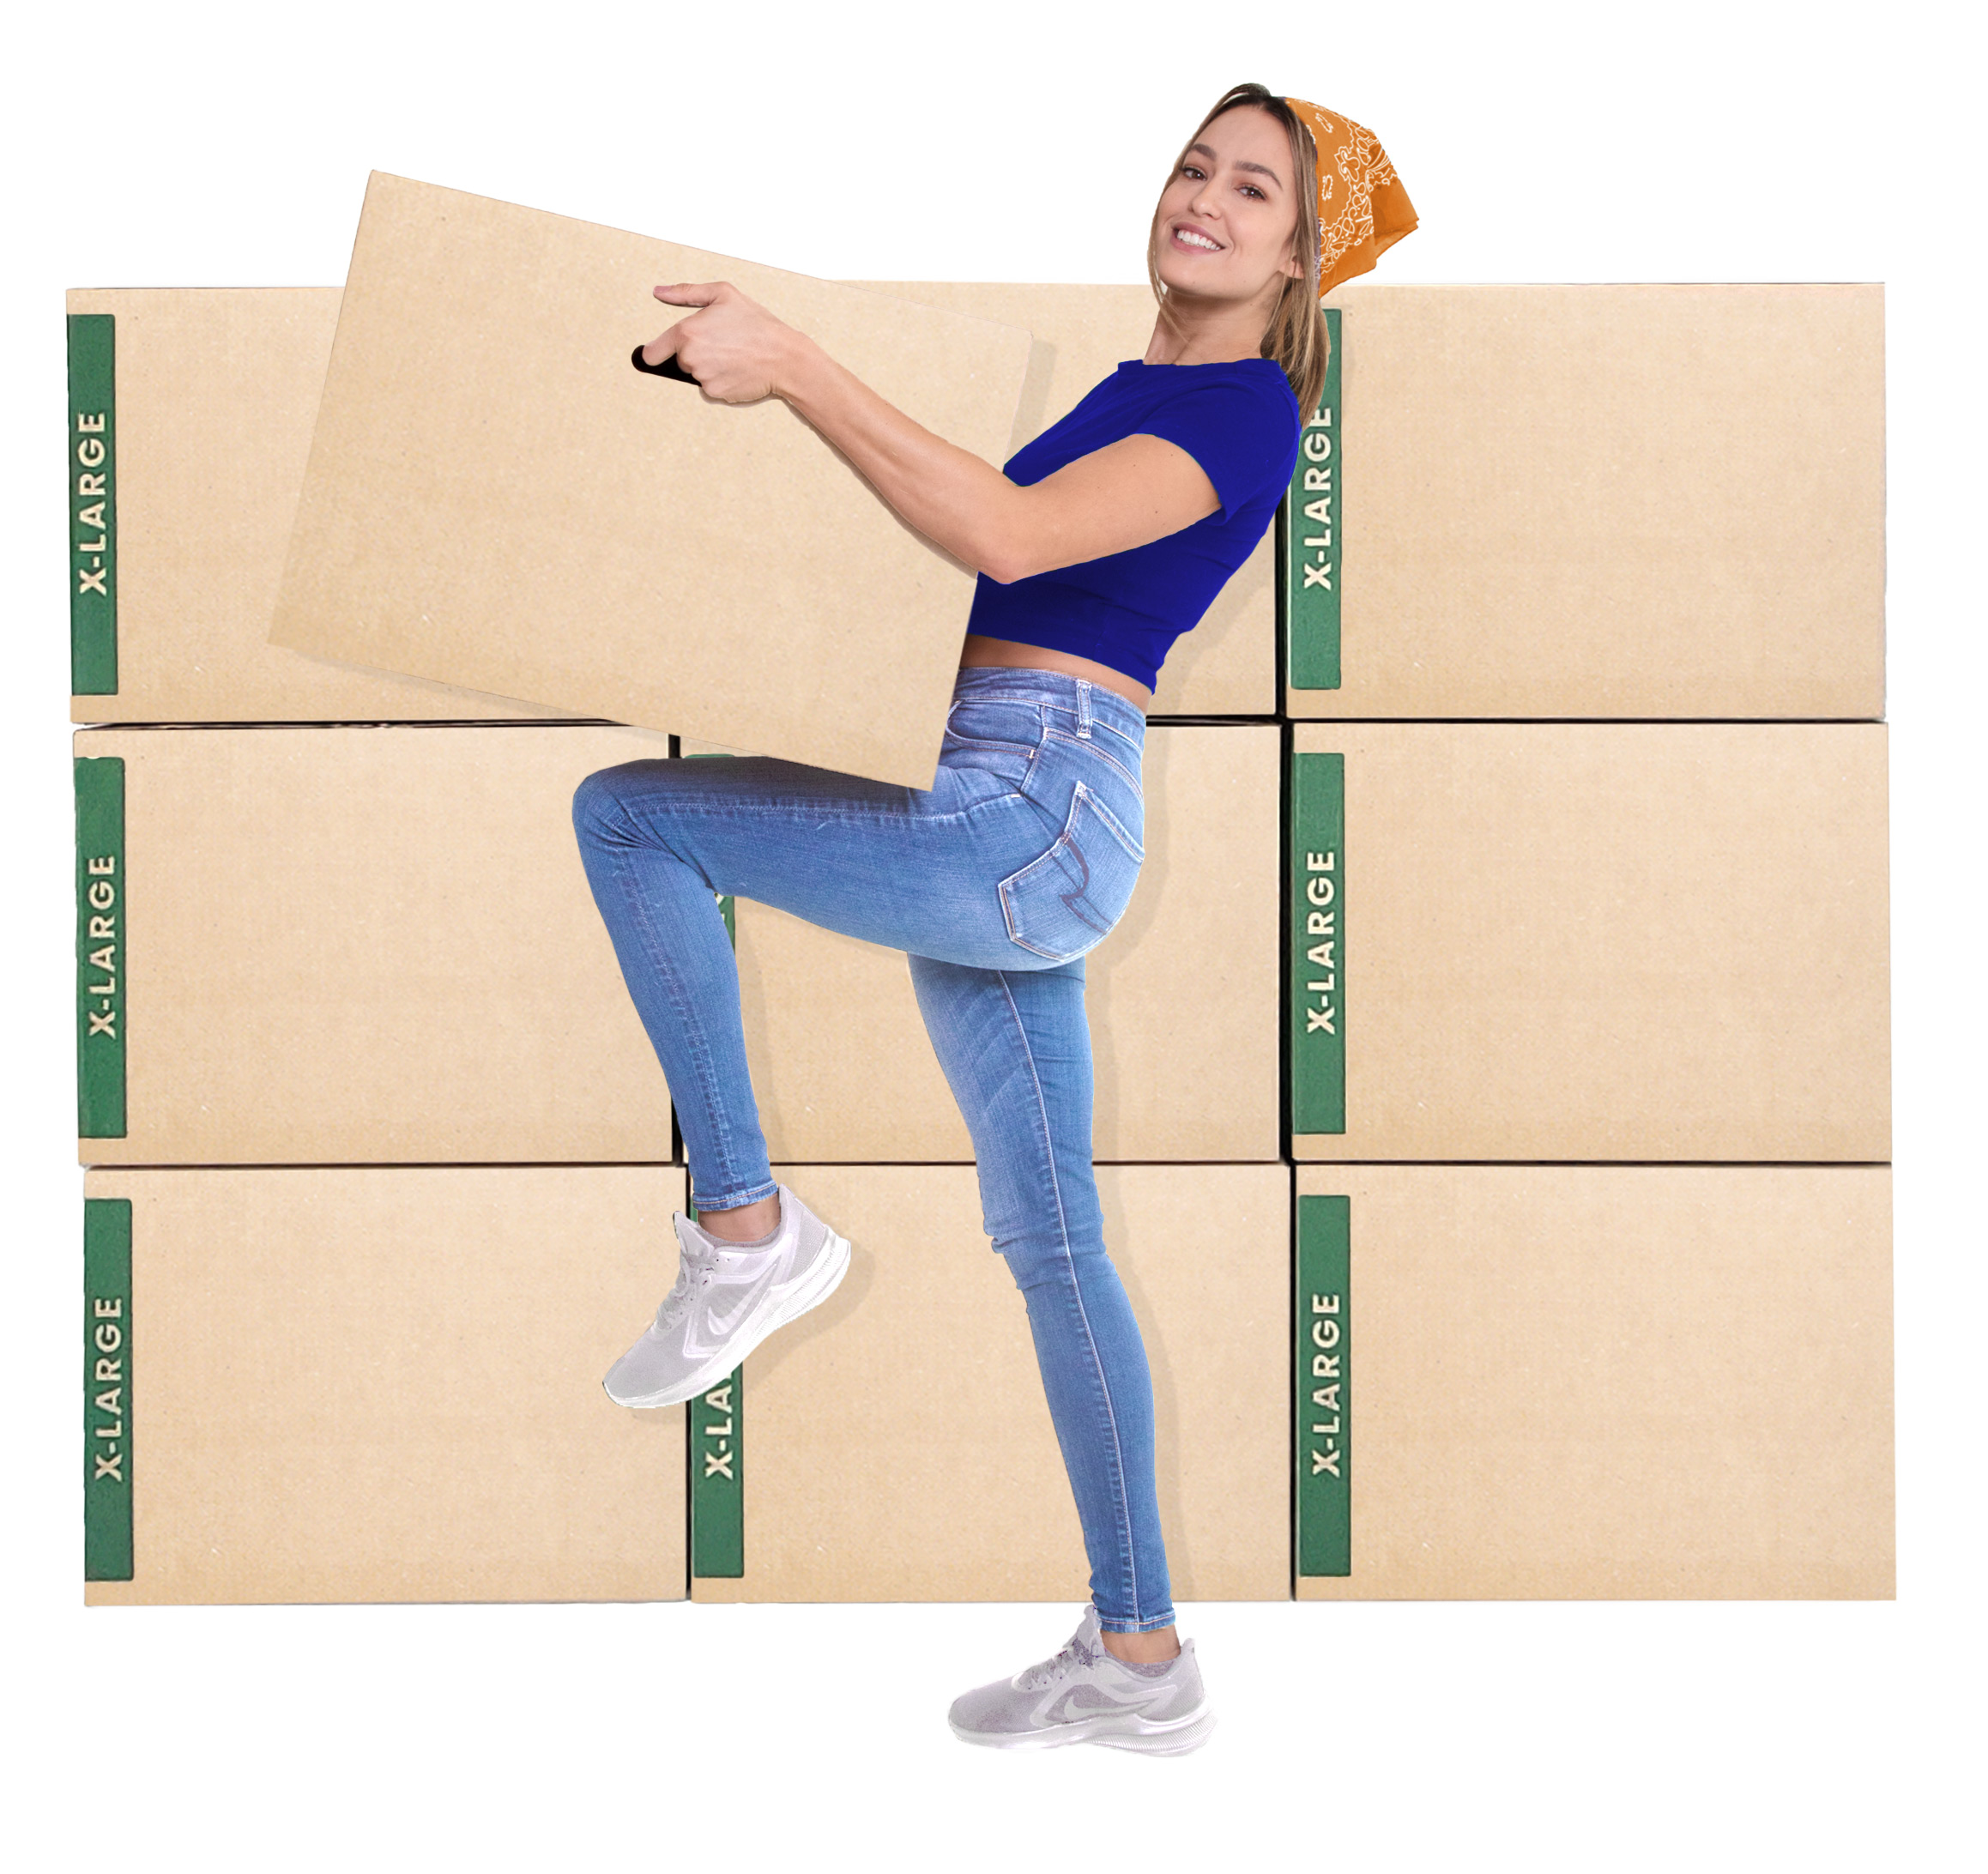 X-Large Moving Boxes x-large moving boxes, xlarge moving boxes, extra large moving boxes, XL boxes, buy boxes near me, moving boxes near me